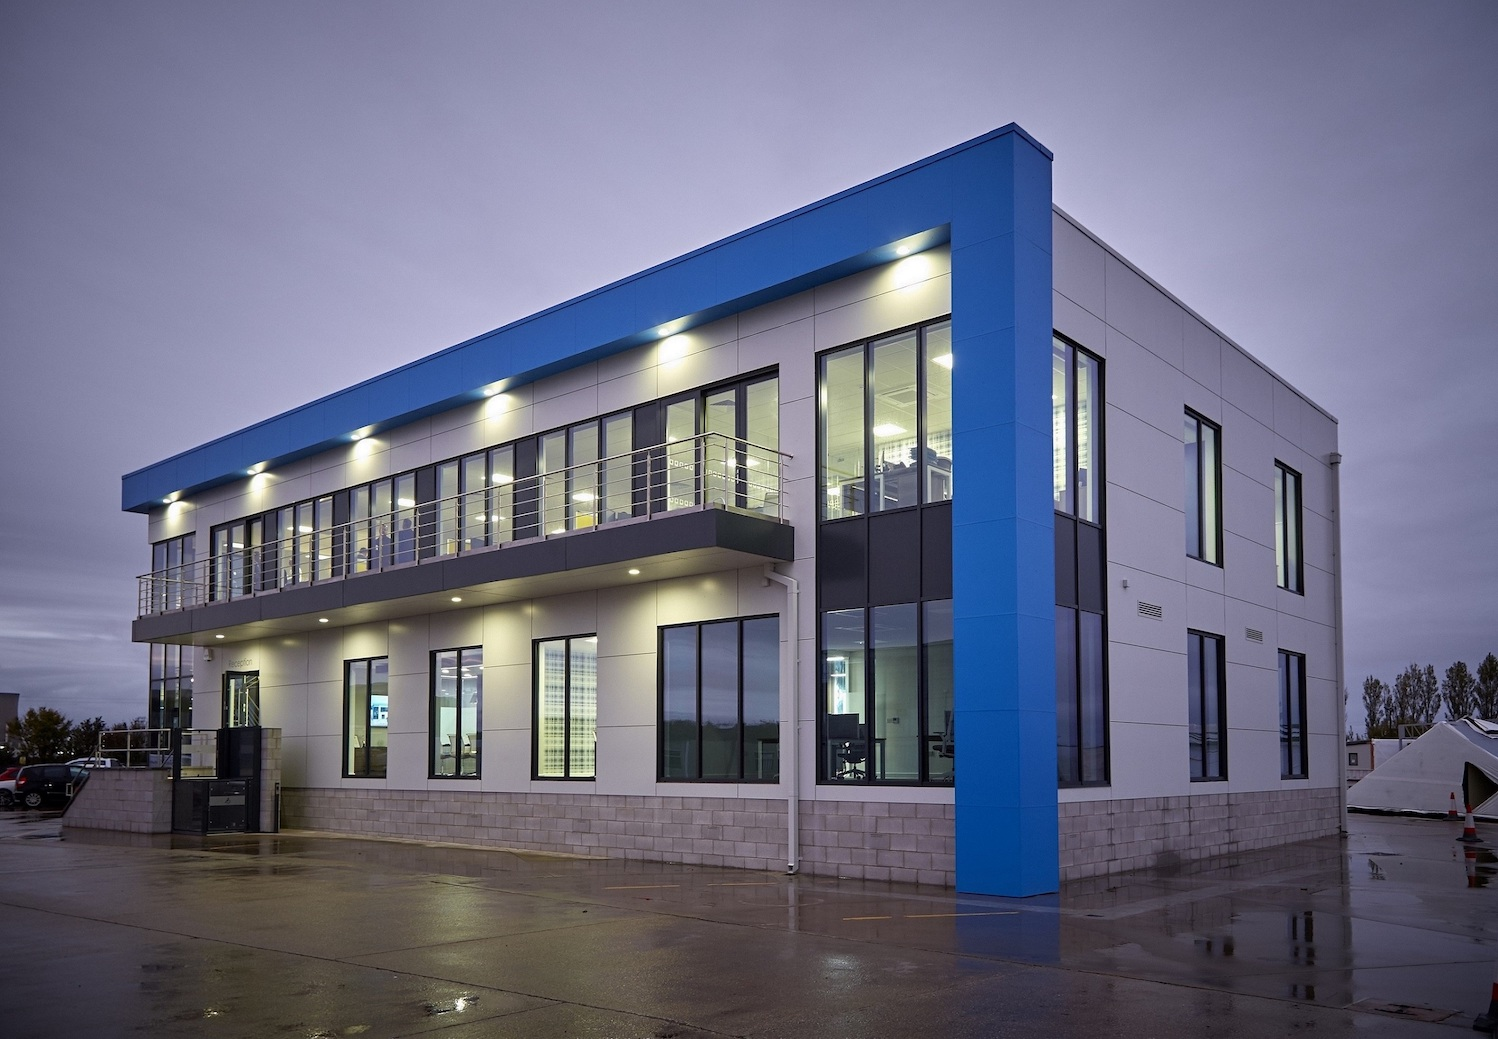 Integra Buildings' striking new offices at the company's expanded site at Paull, East Yorkshire. The modular offices were built just yards away in Integra's own factory units.